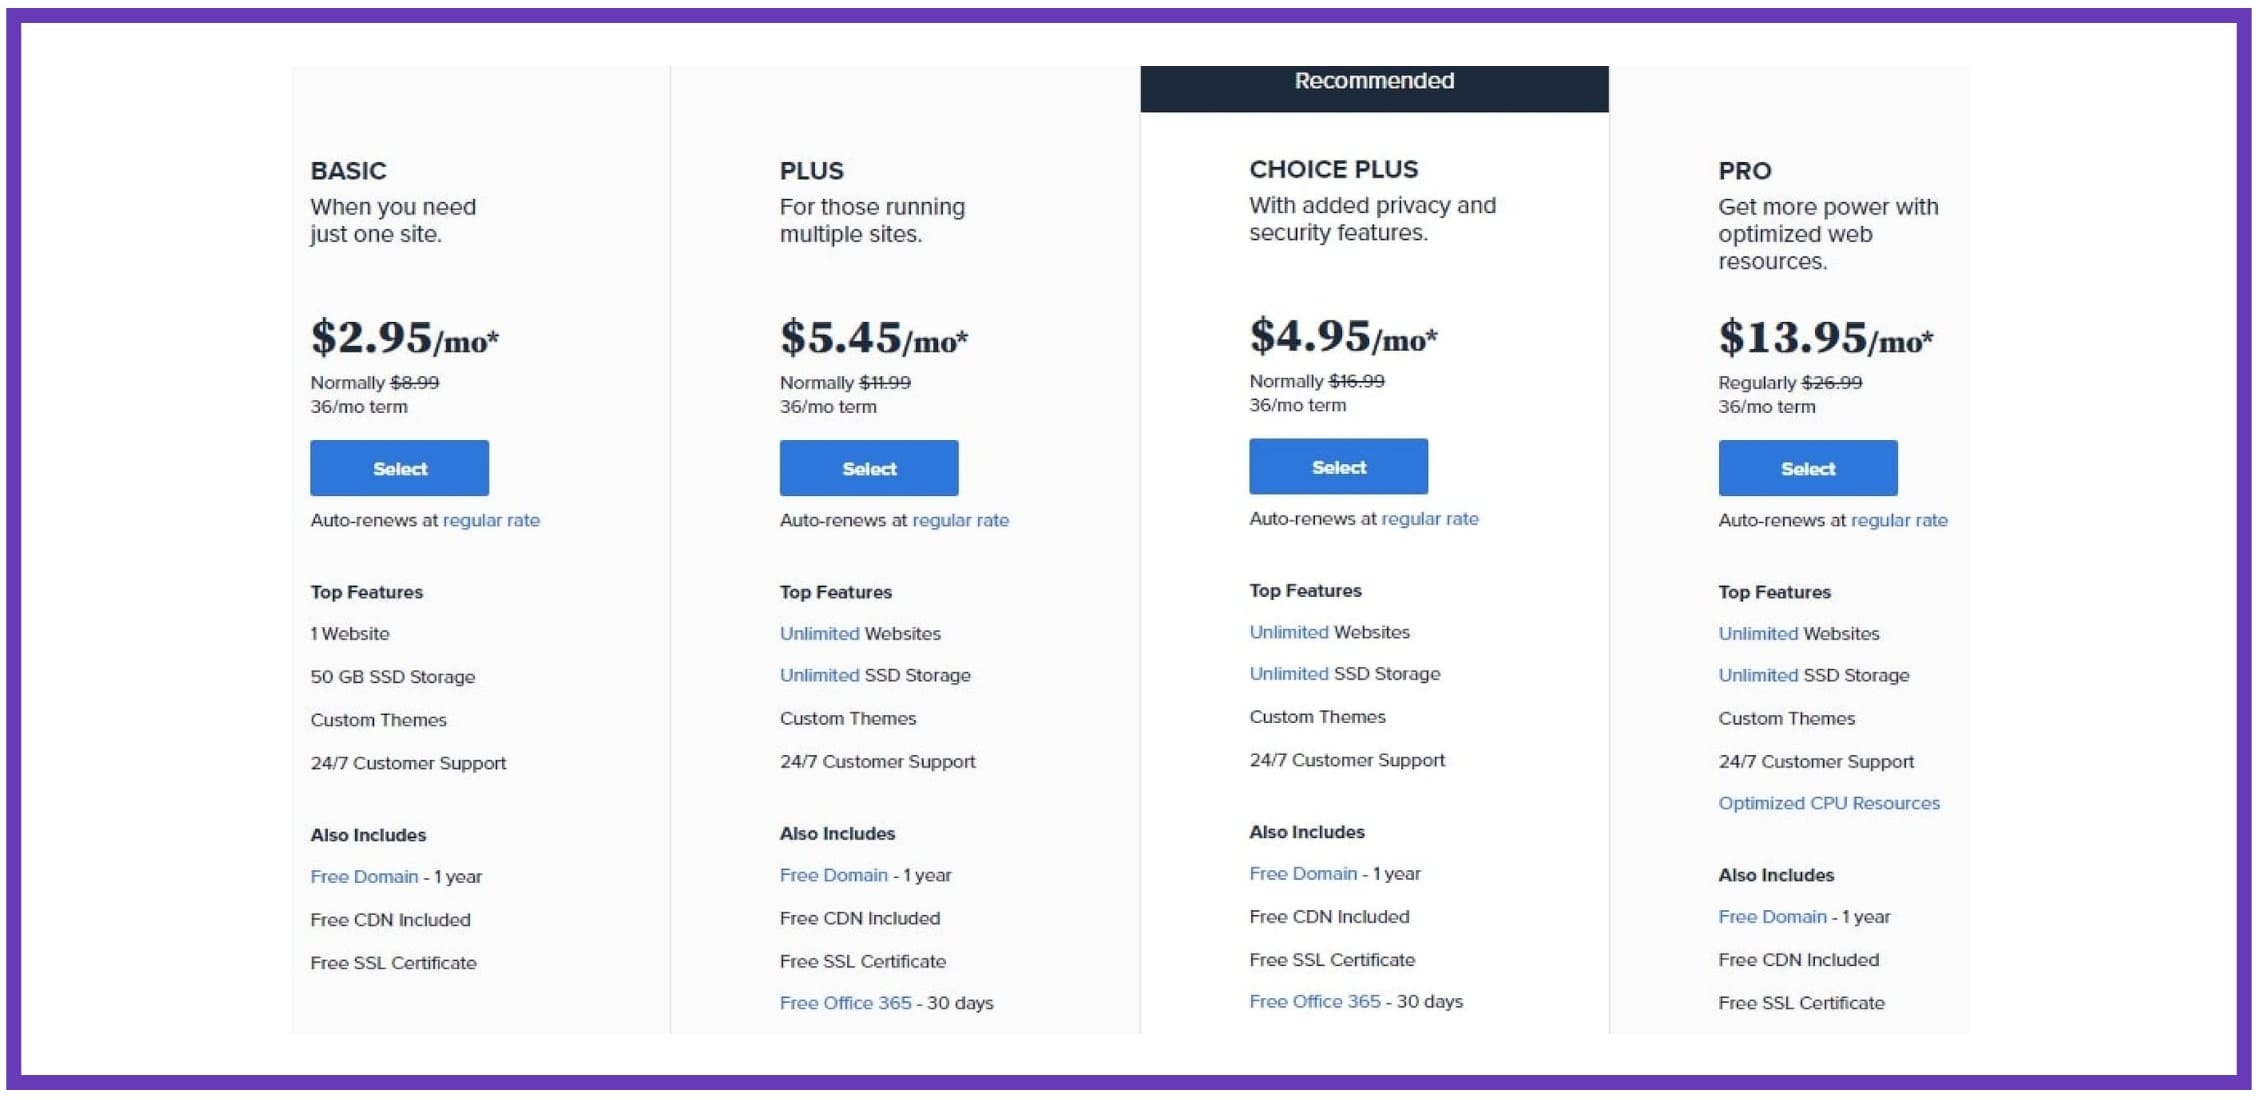 Bluehost Review 2021: Recommended Hosting For WordPress Since 2005 - bluehost review 2